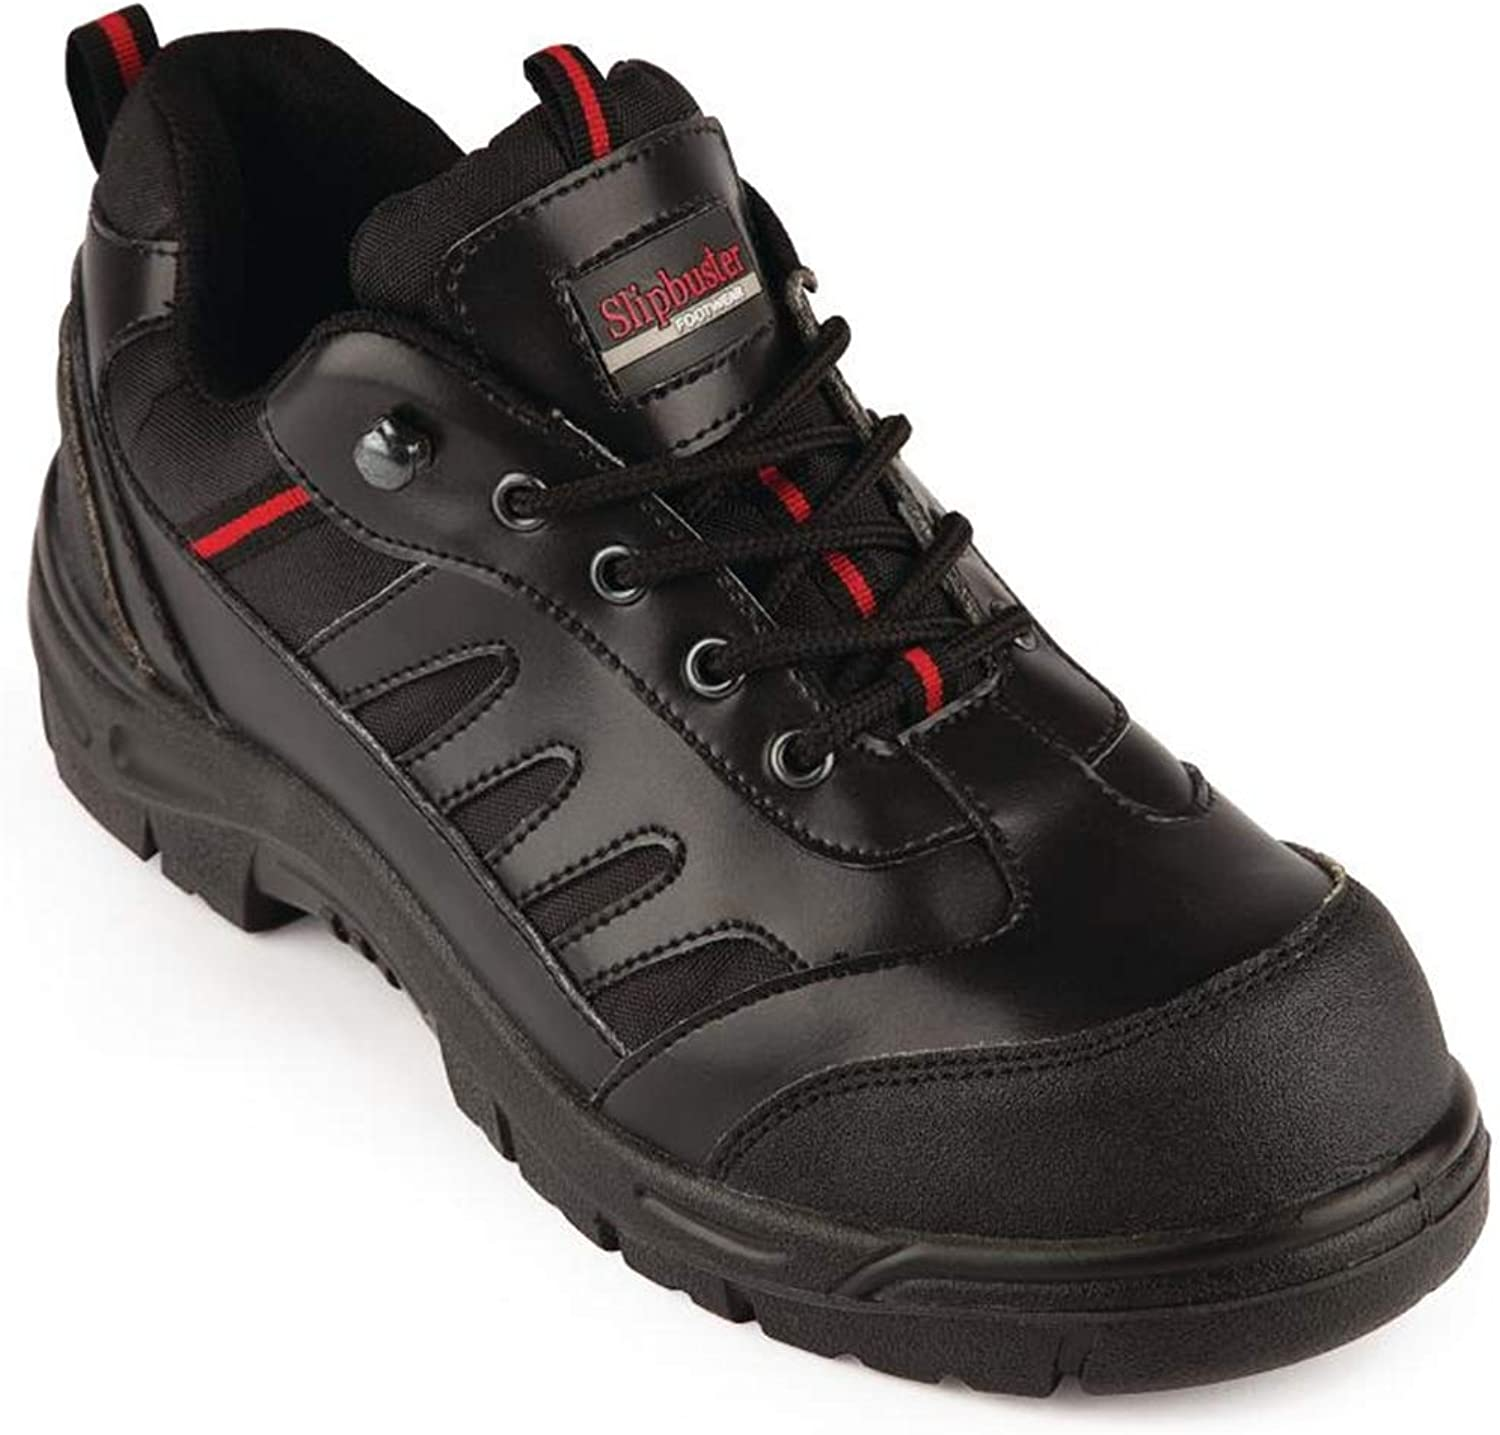 Slipbuster Footwear A314-47 Slip Buster Safety Trainer, Size 42